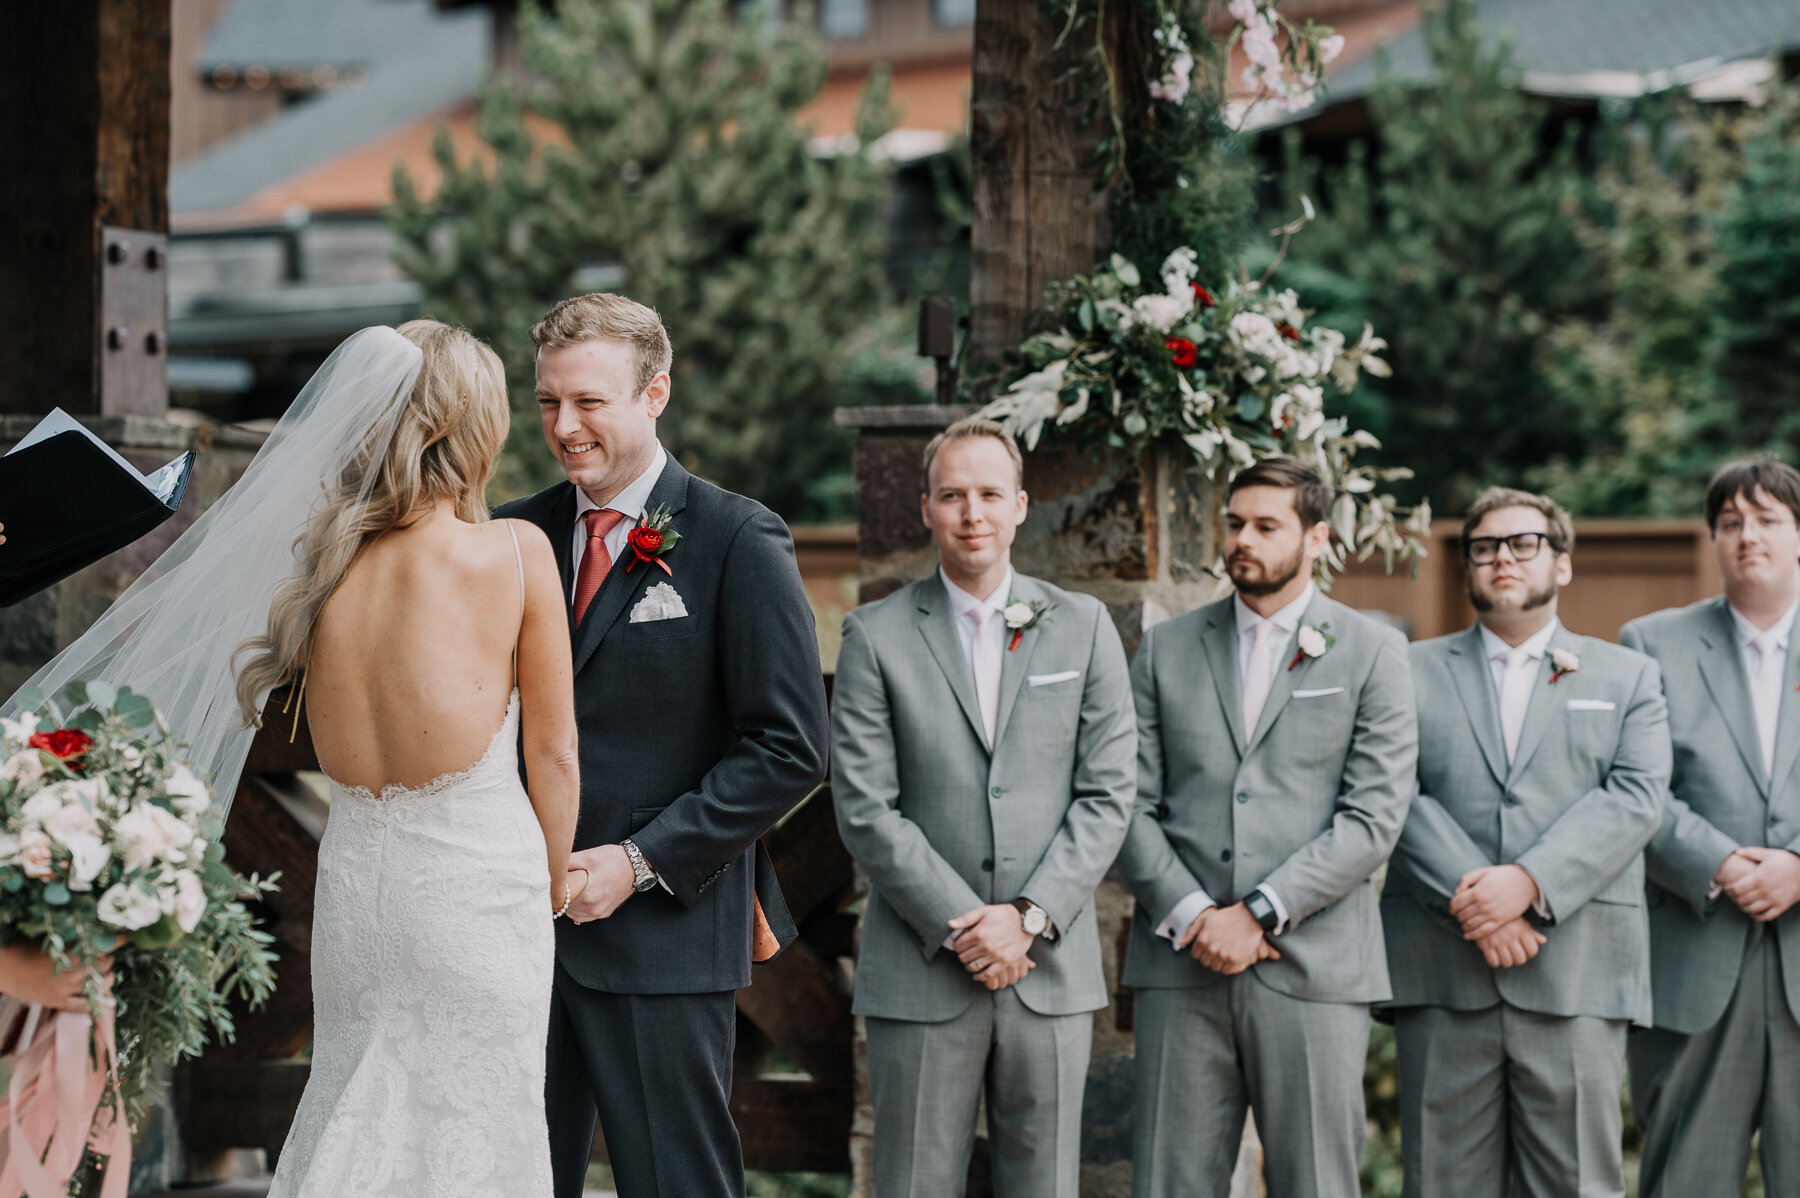 0826Swiftwater Cellars Wedding_Cle Elum Wedding_Montana Wedding Photographer_Kat & Kyle_September 15, 2018-1102.jpg